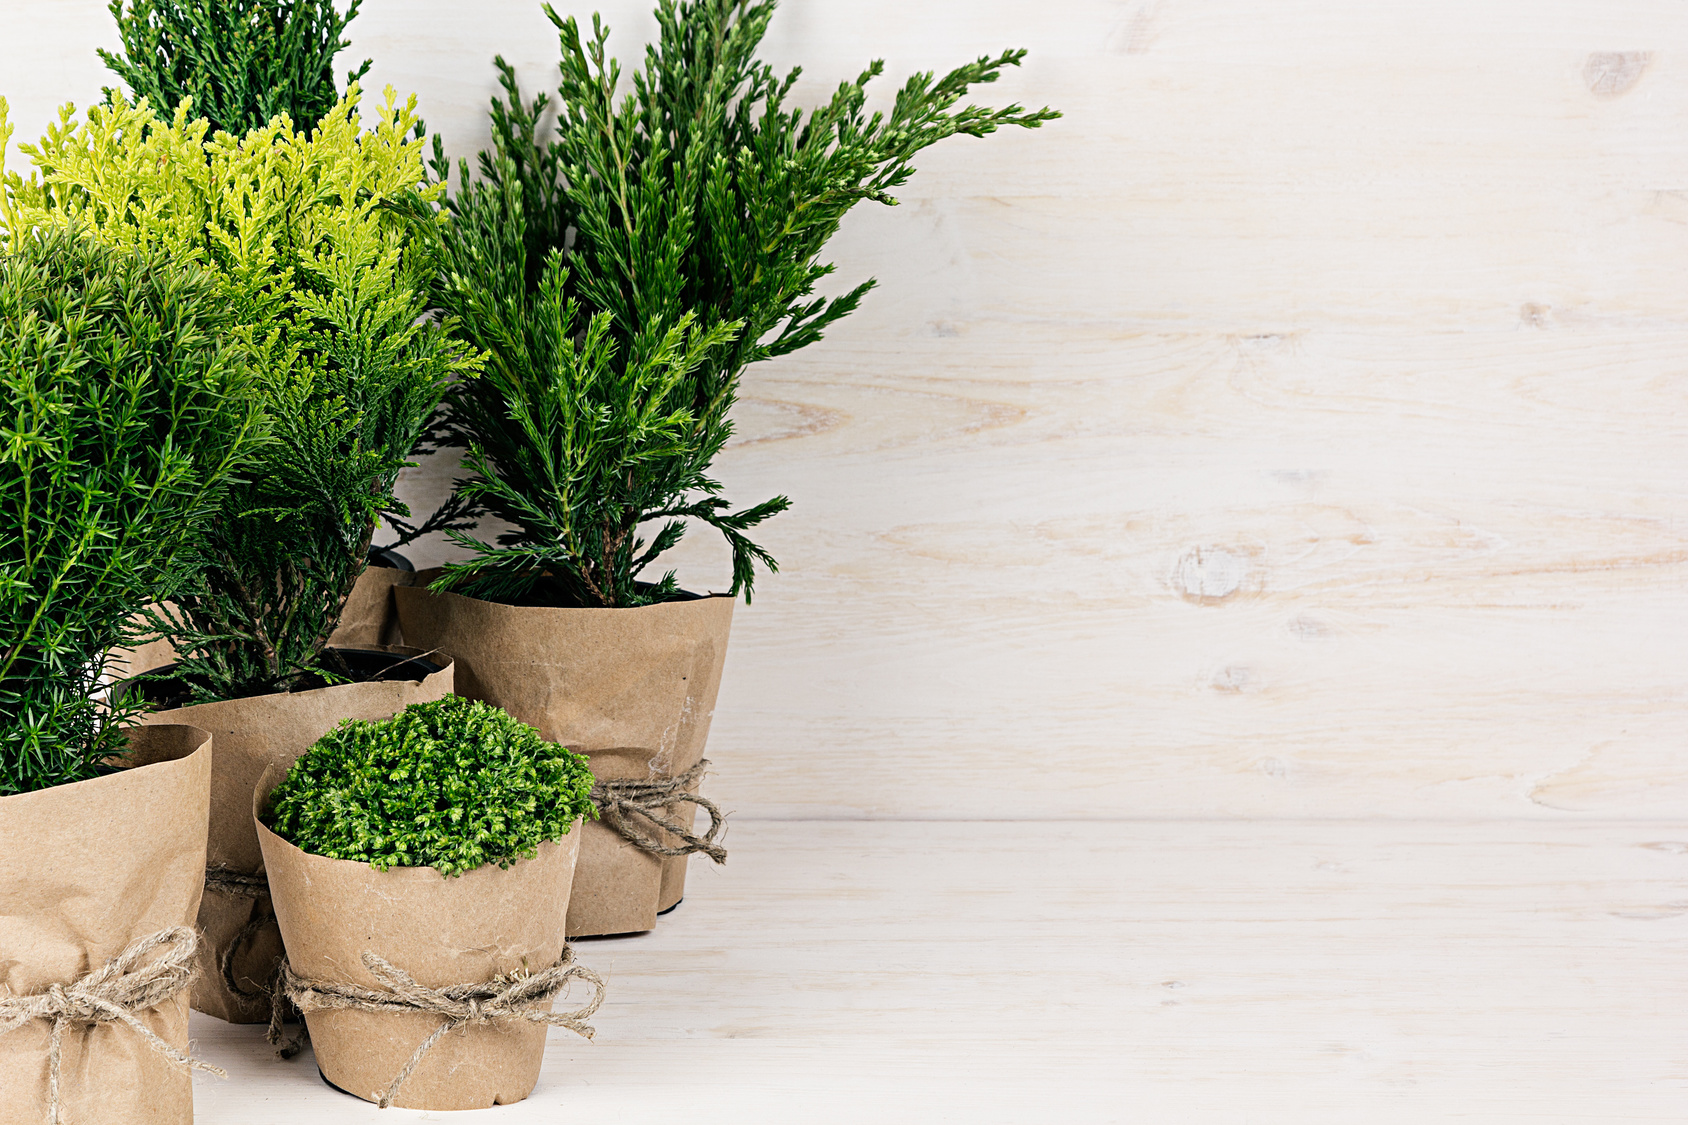 Assortment young green conifer plants in handmade pots with copy space on beige wood table.